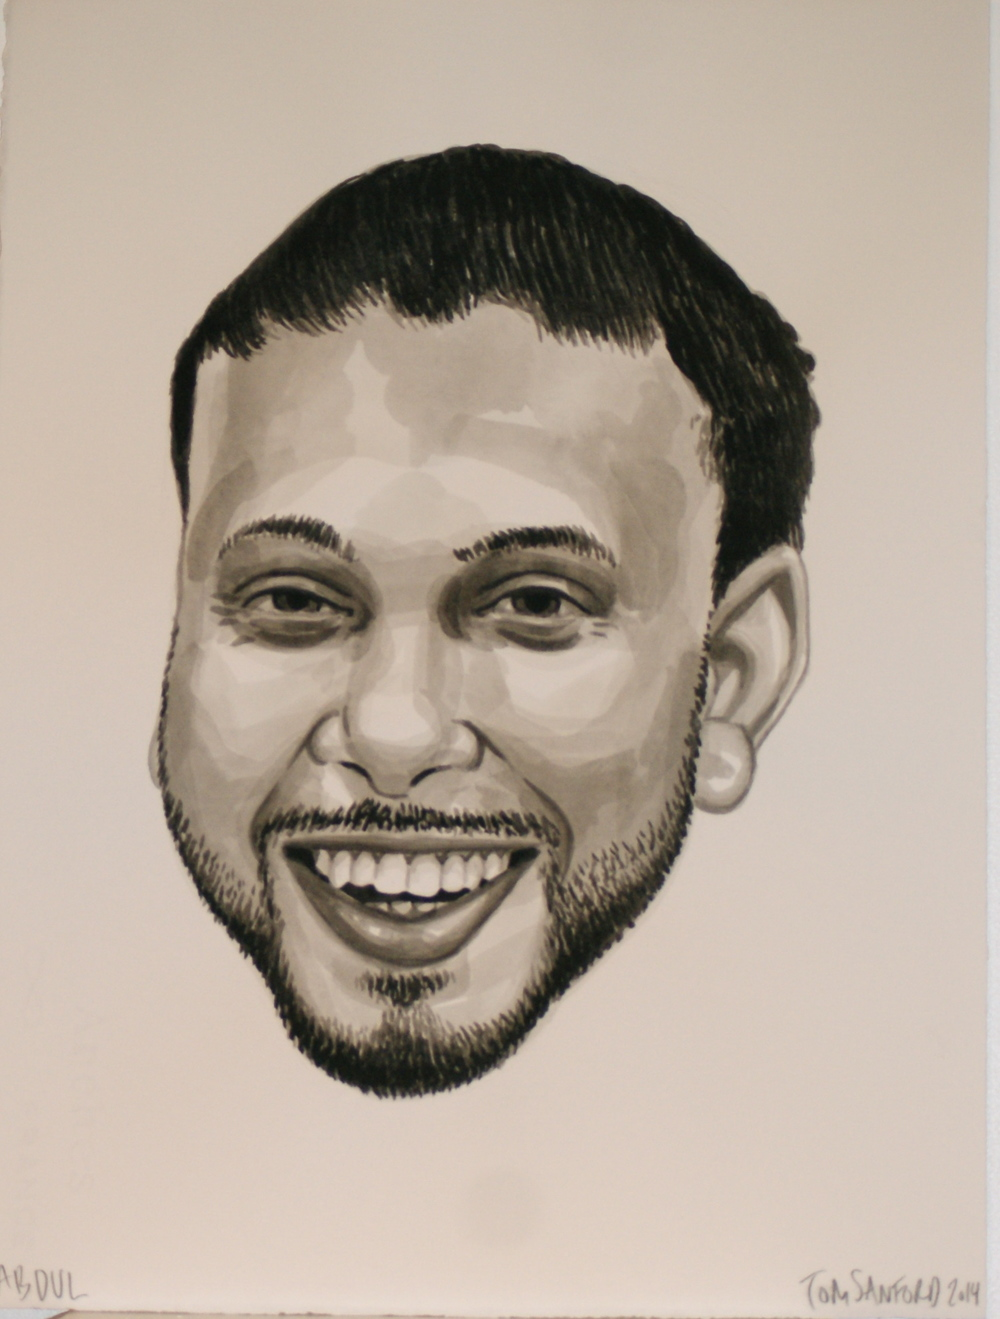 Abdul, 2014 [corporate collection NJ, USA] Ink on Paper 11 x 15 in.